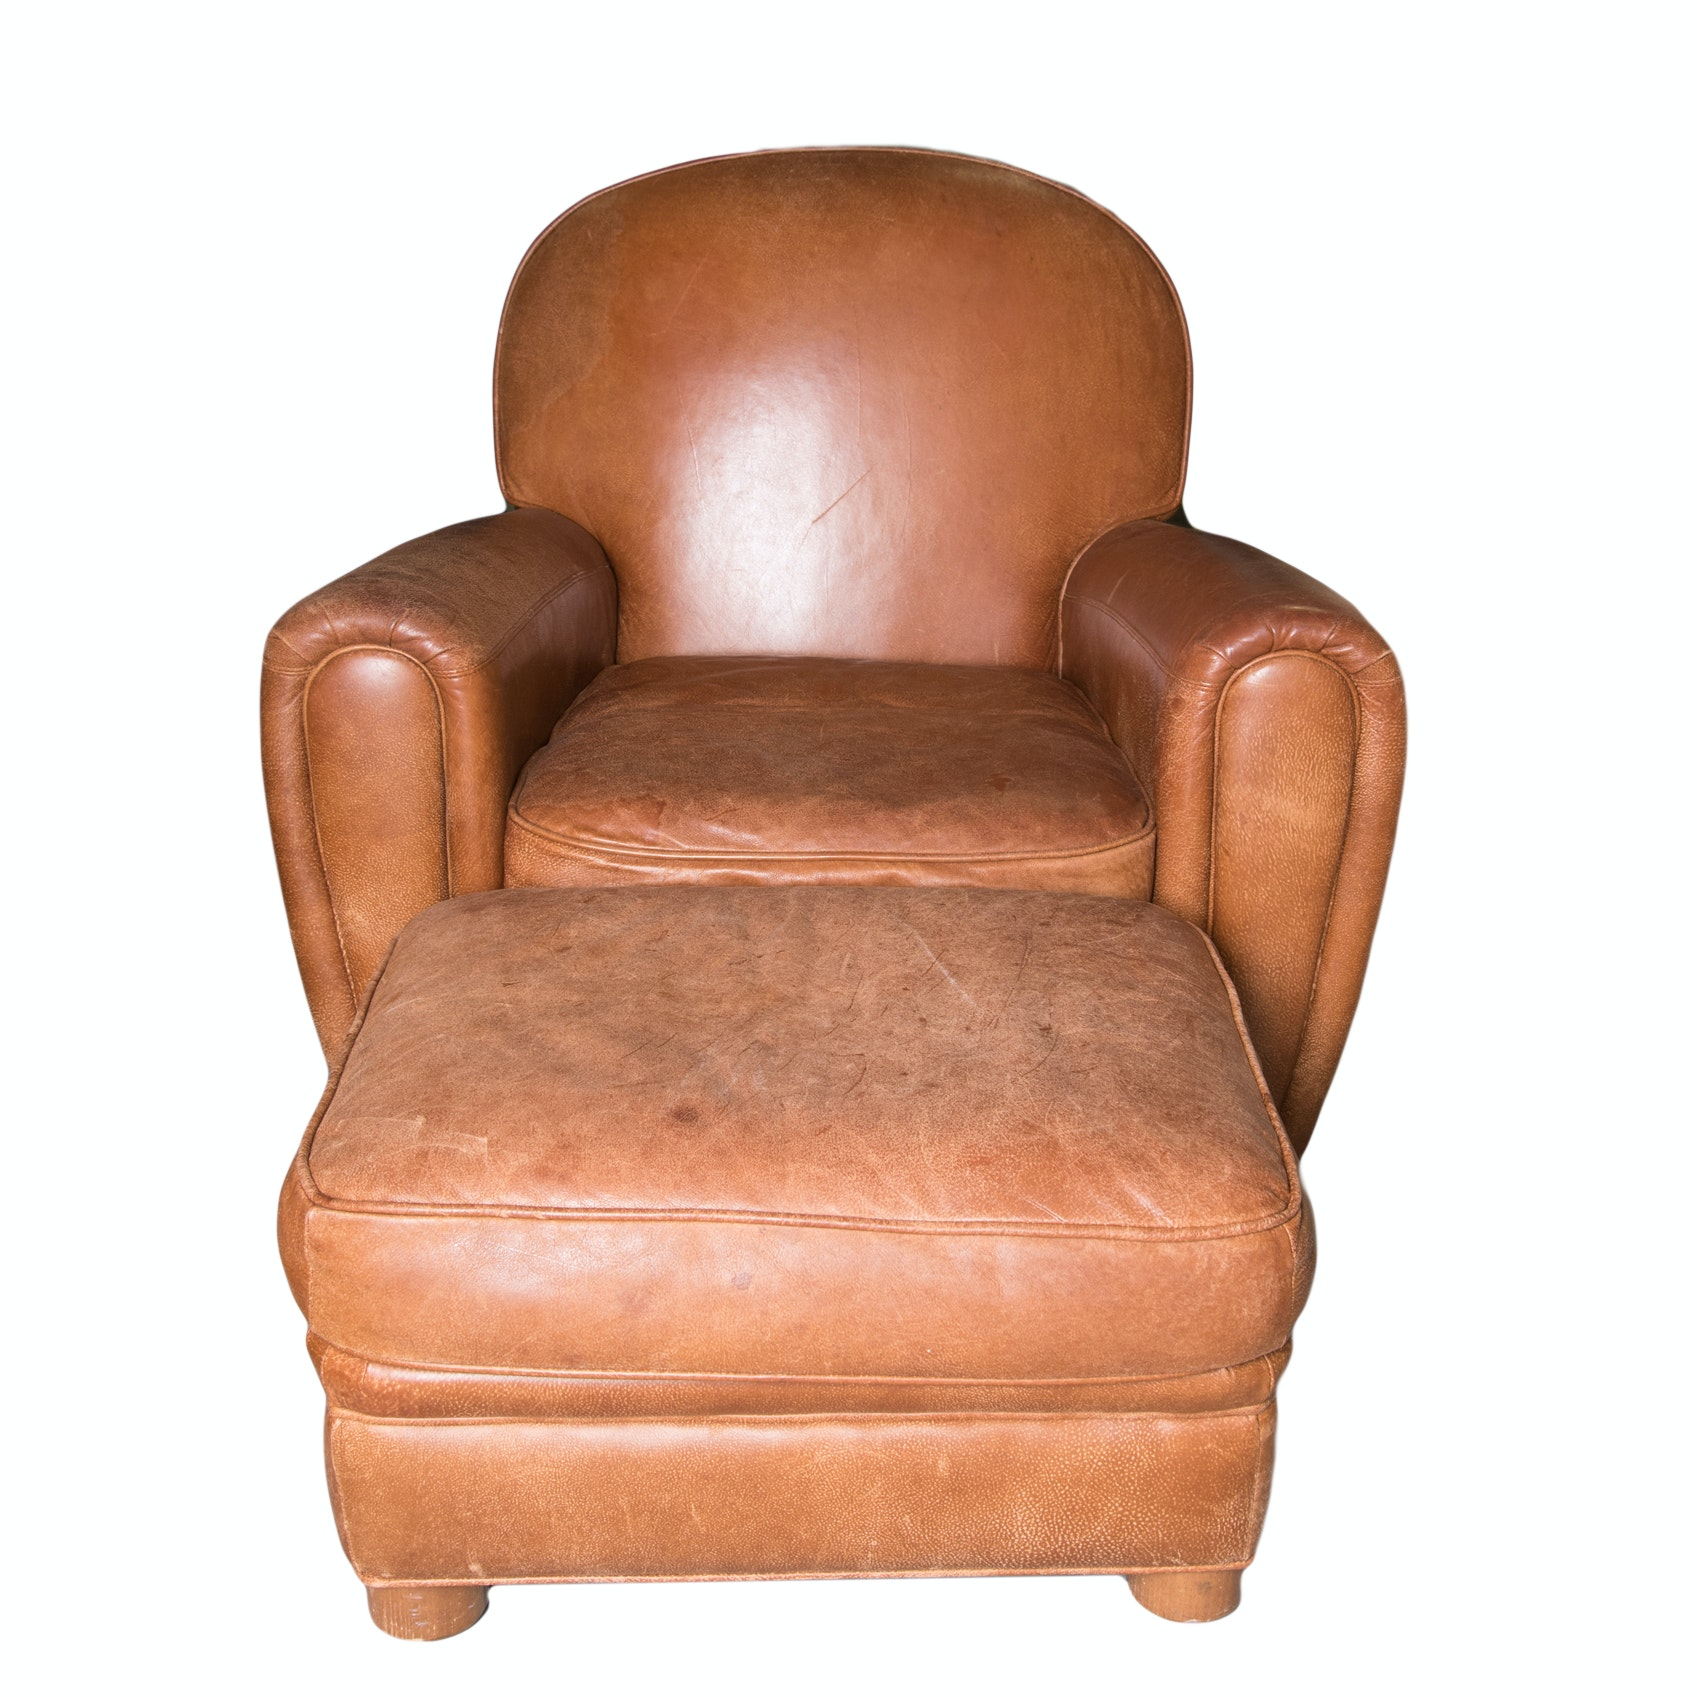 Bernhardt Leather Arm Chair and Ottoman